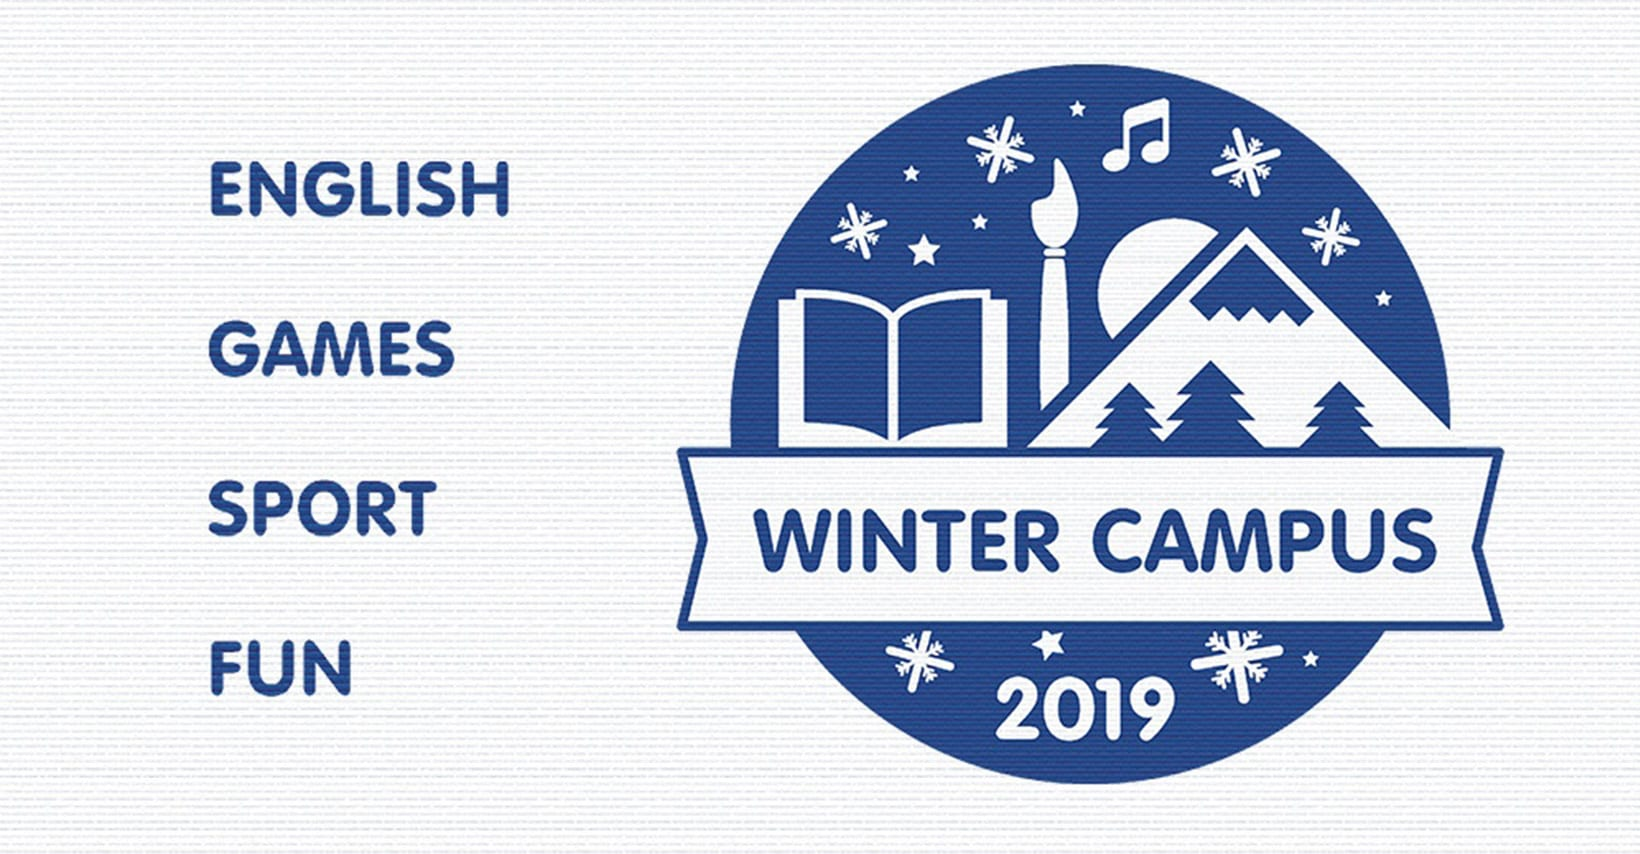 Winter Campus 2019